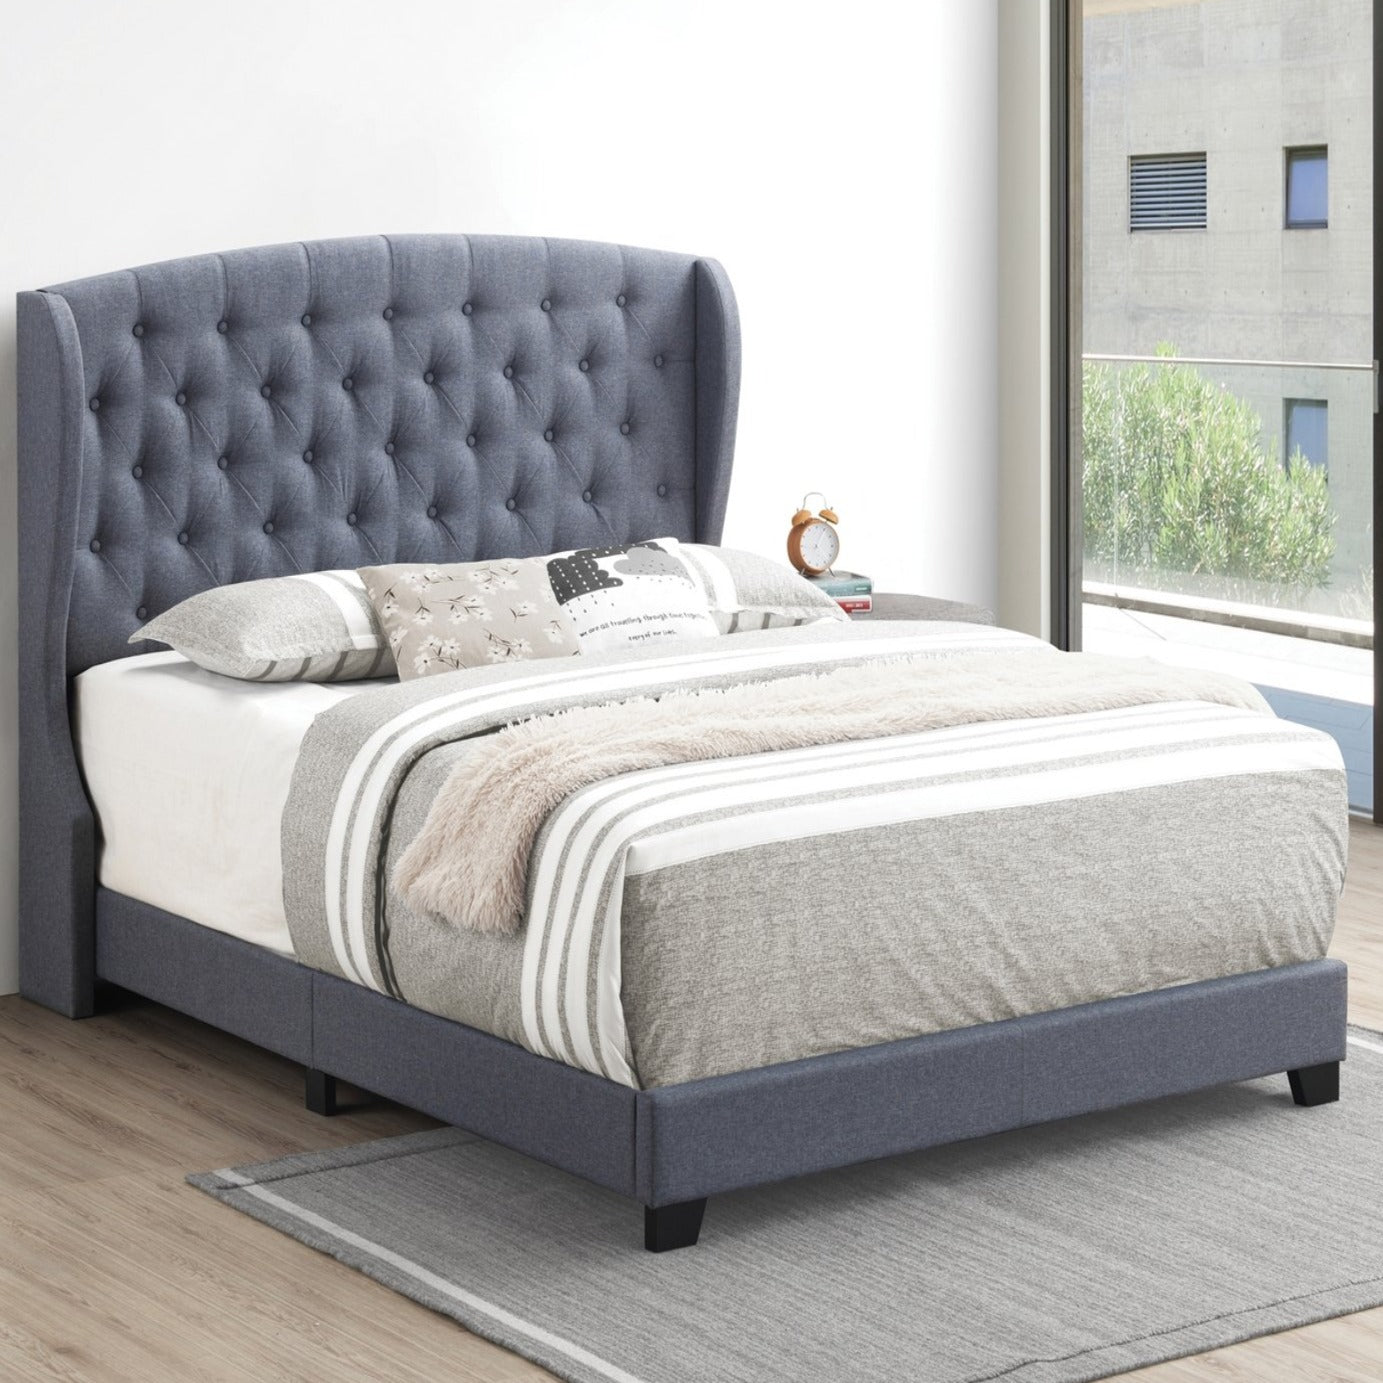 Krome Wing Bed